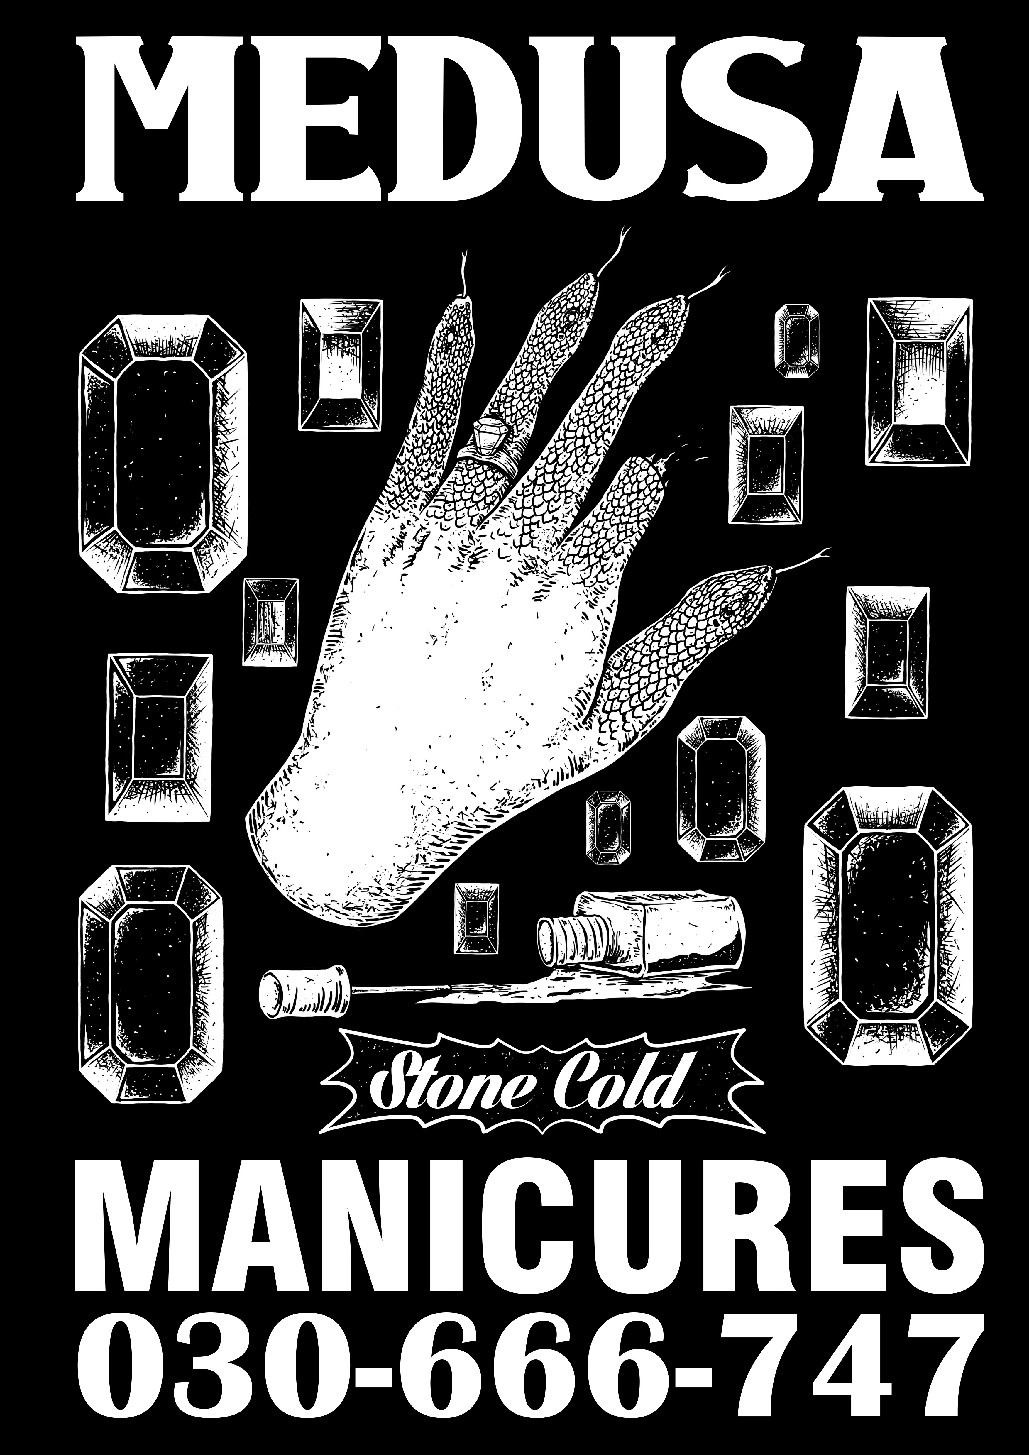 Design tough merch for a manicure salon with lots of snakes